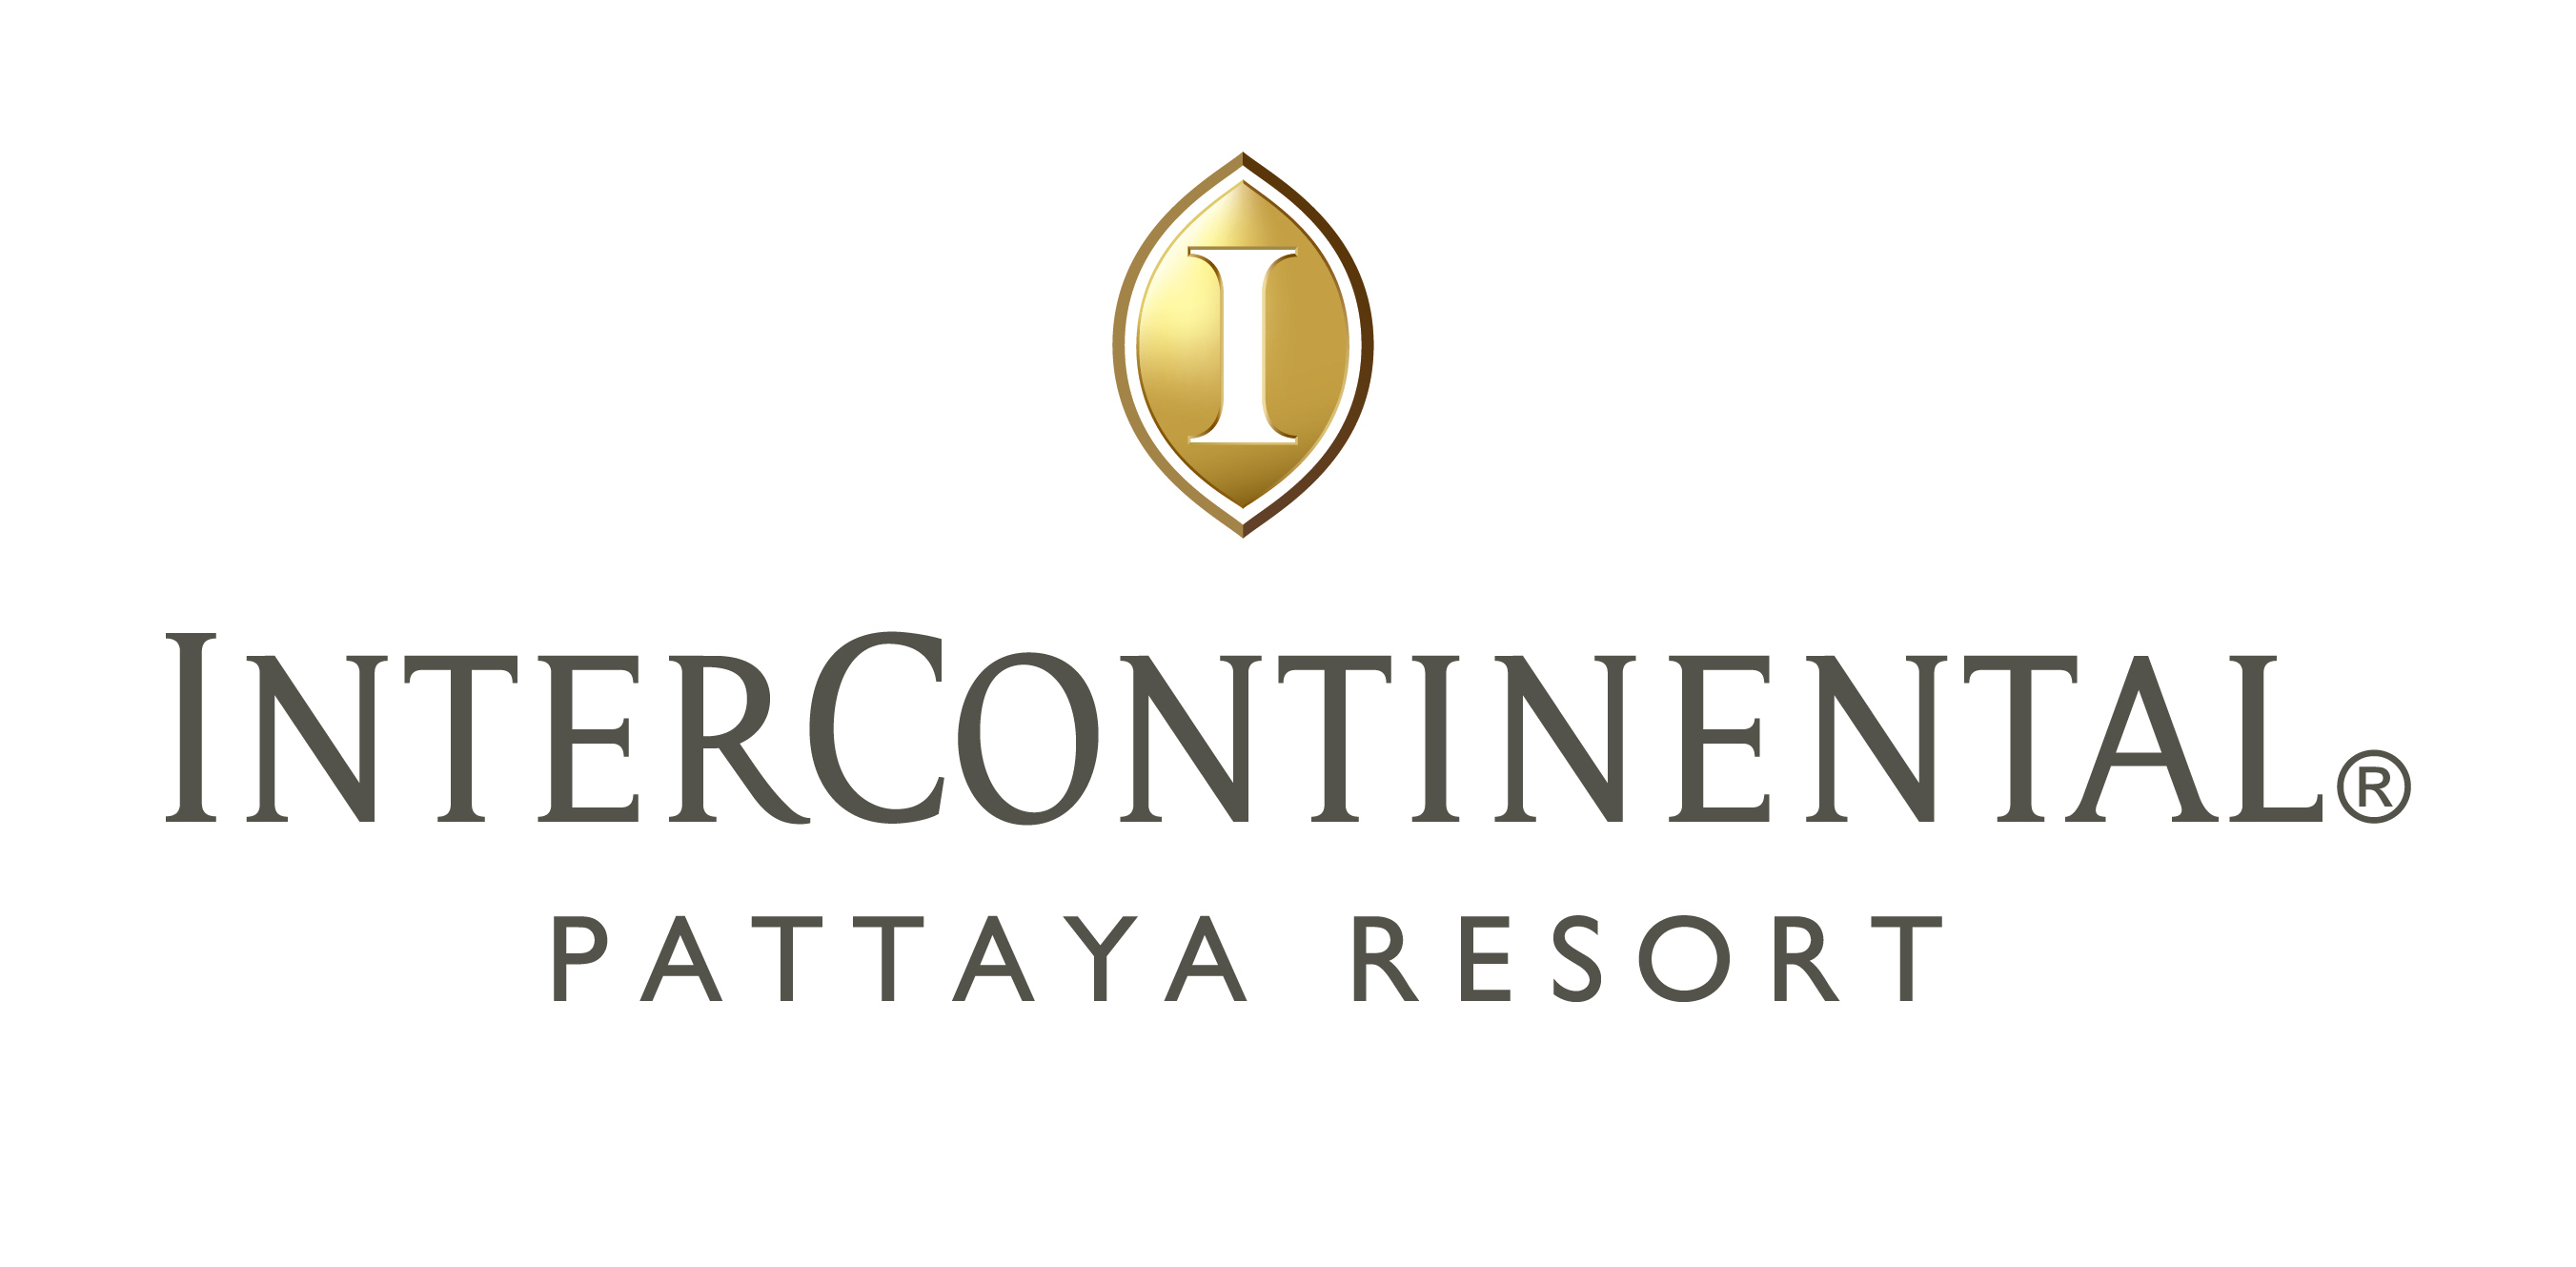 InterContinental Pattaya Resort